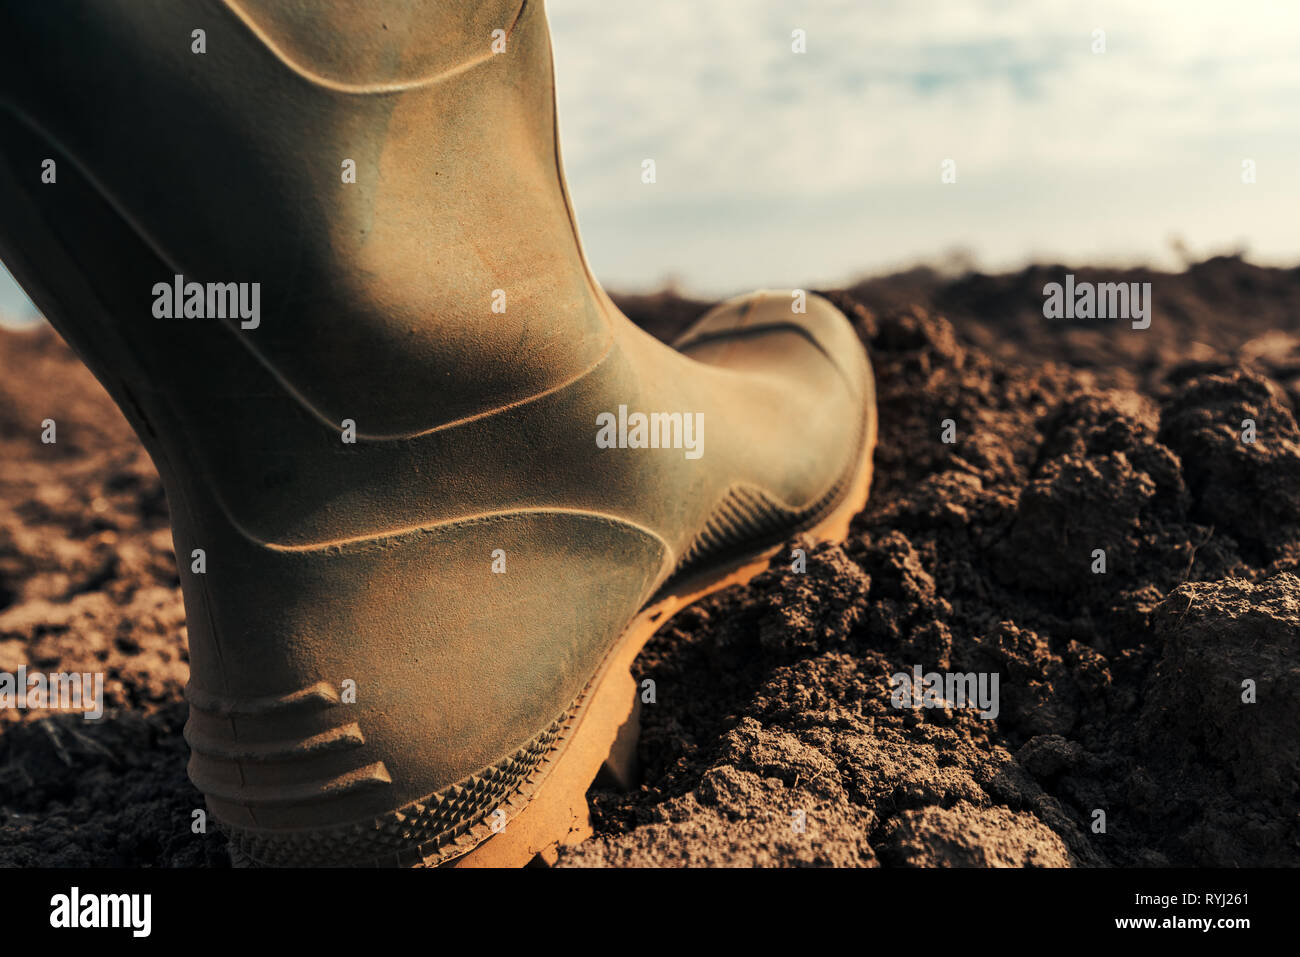 Farmer in wellington rubber boots making first step in field, close up. Beginning of agricultural season and starting of activities on farmland. - Stock Image